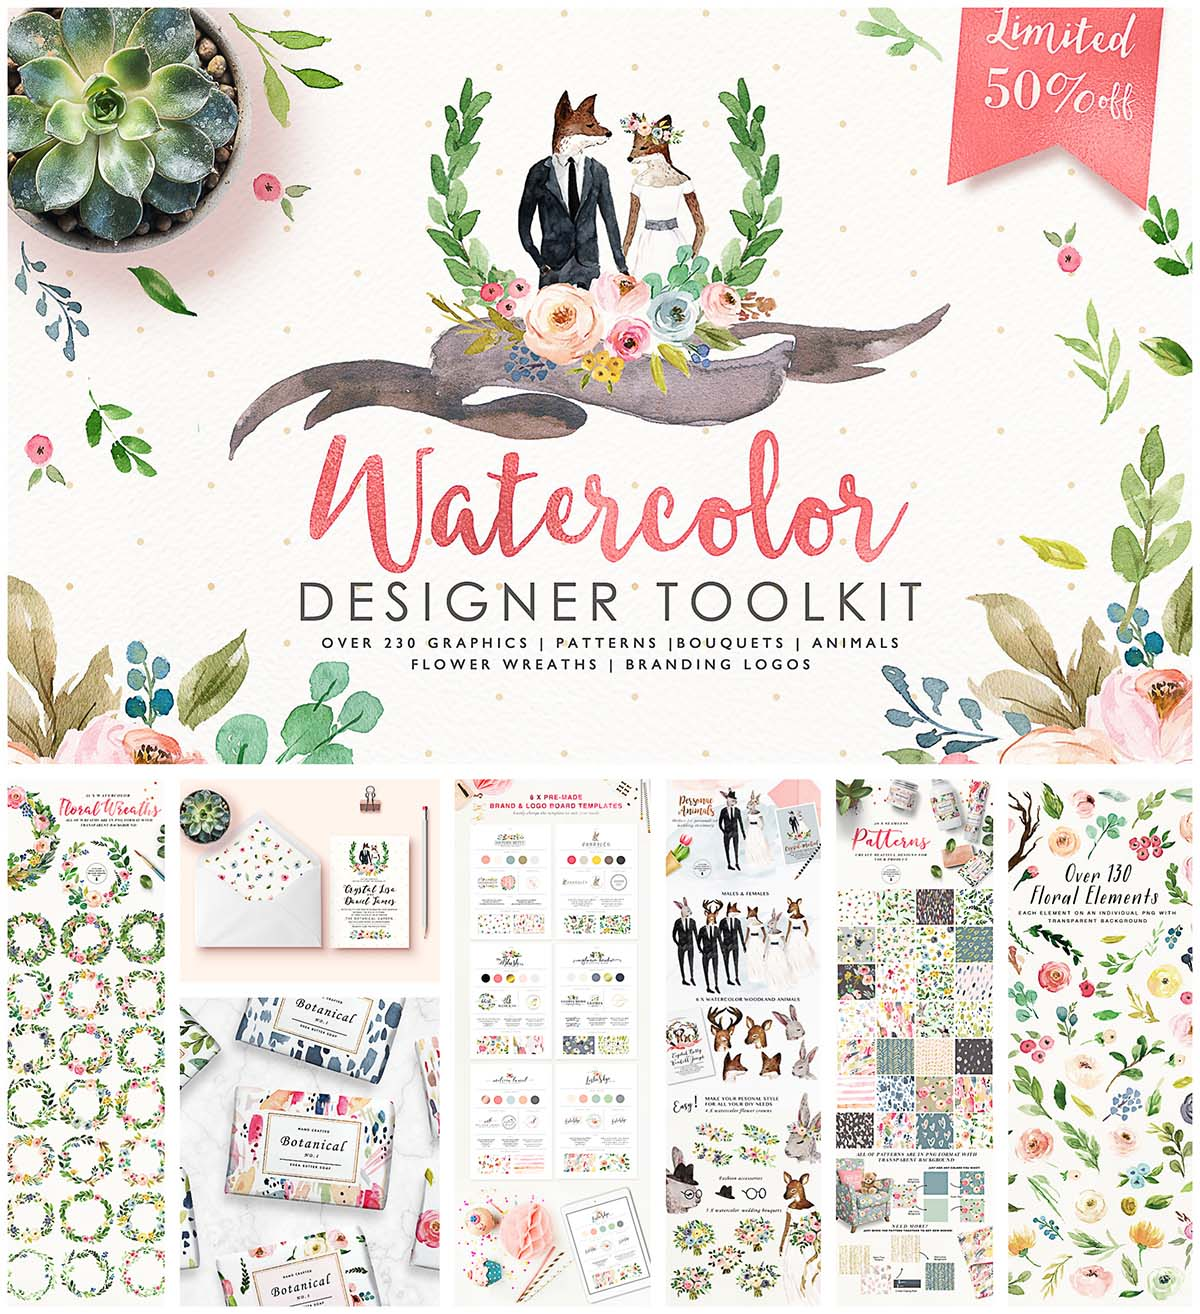 Hand drawn watercolor designer toolkit